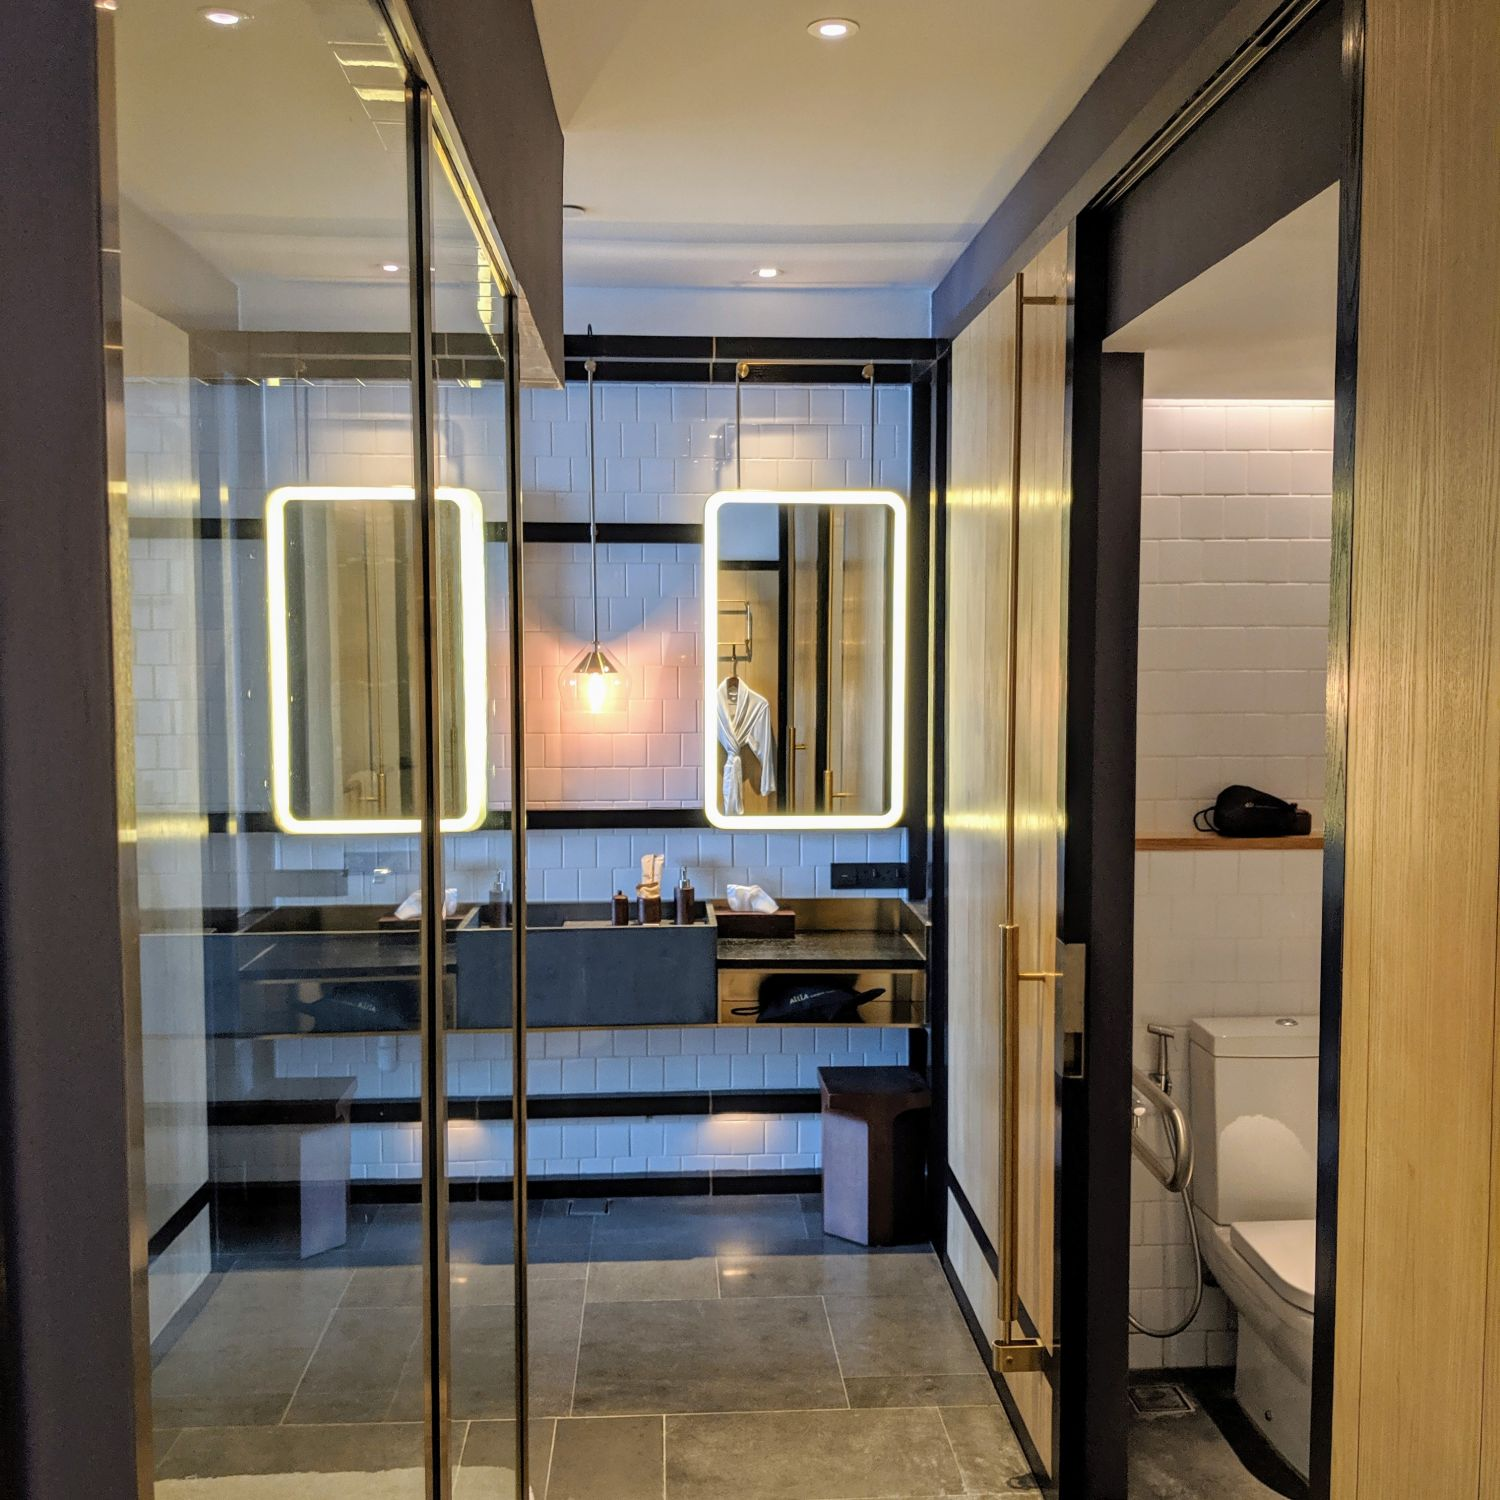 alila bangsar king bed deluxe bathroom